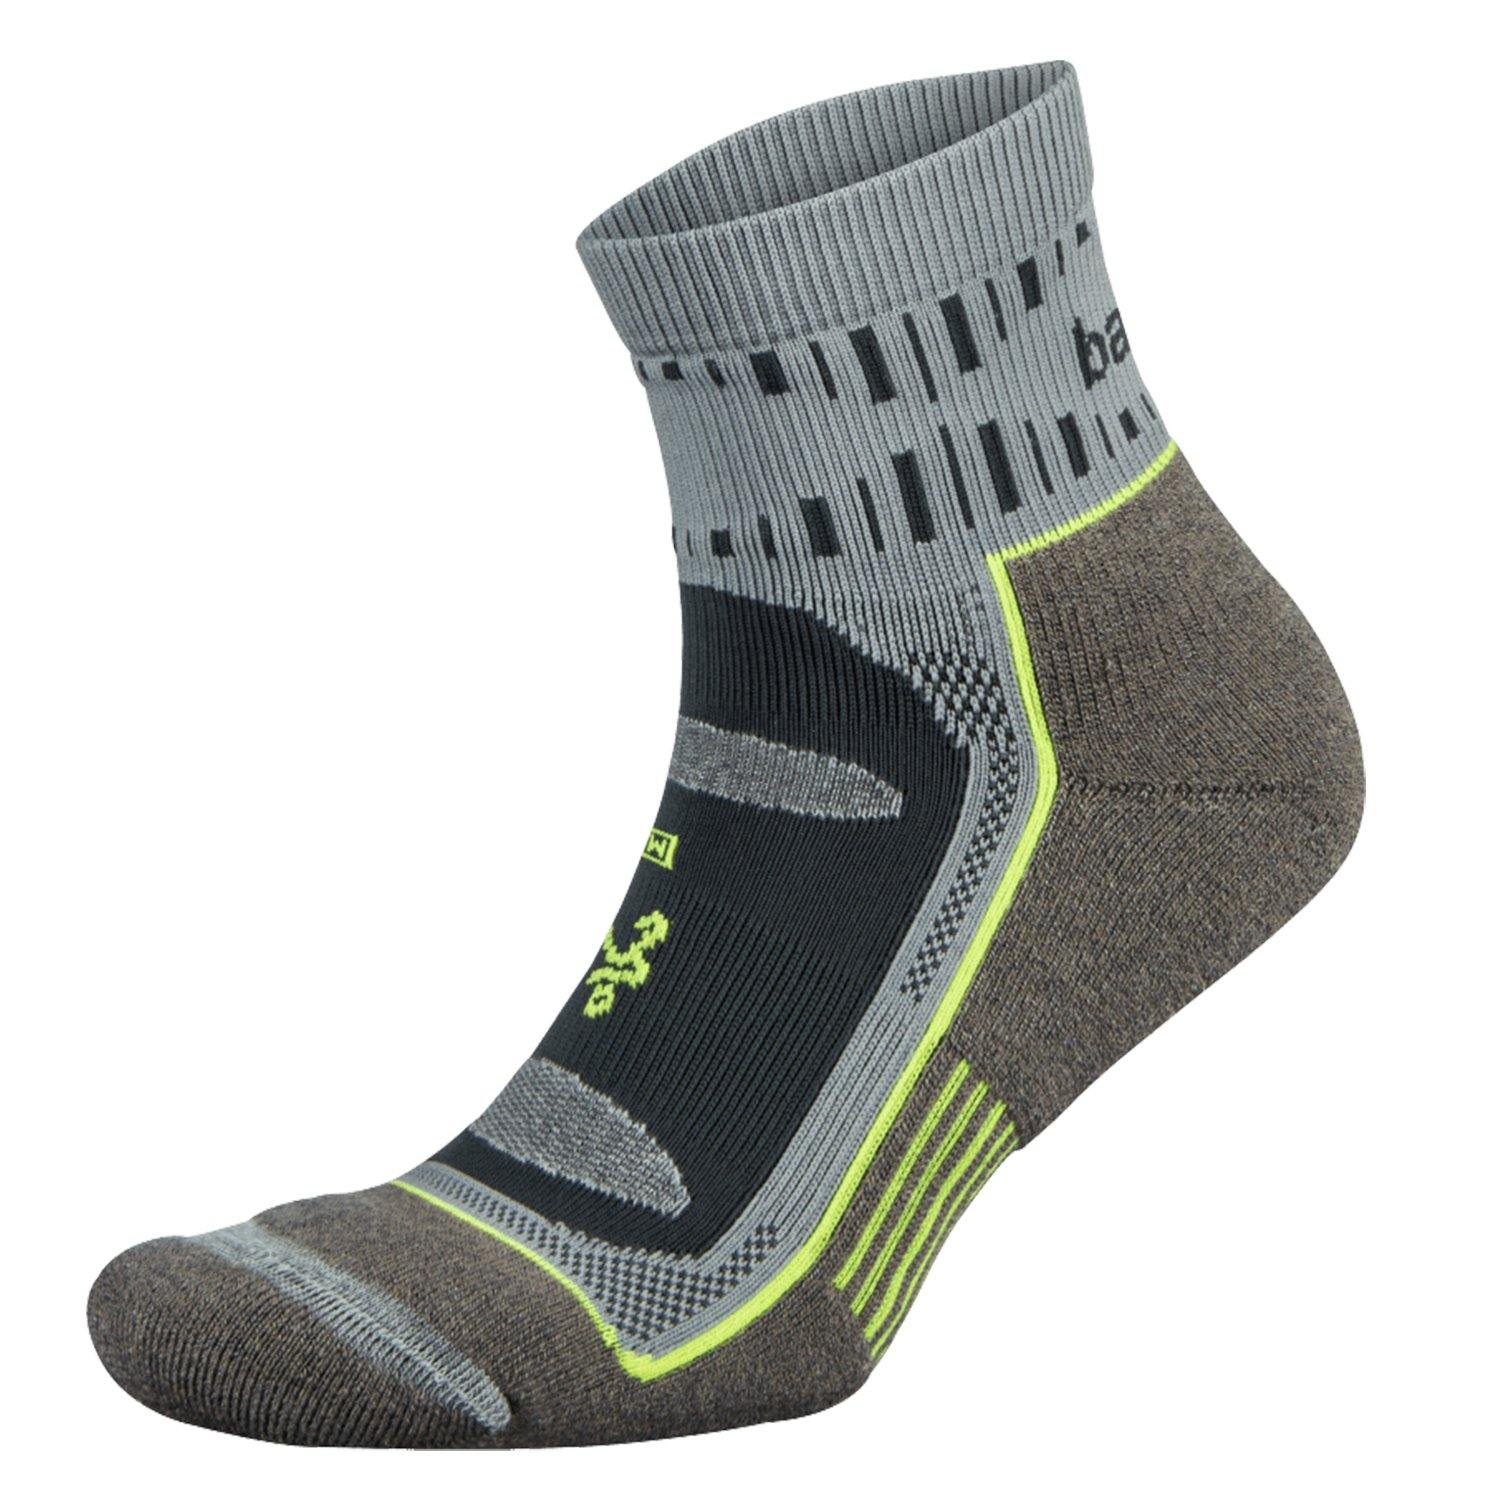 Balega Blister Resist Quarter Crew Socks - Mink/Grey